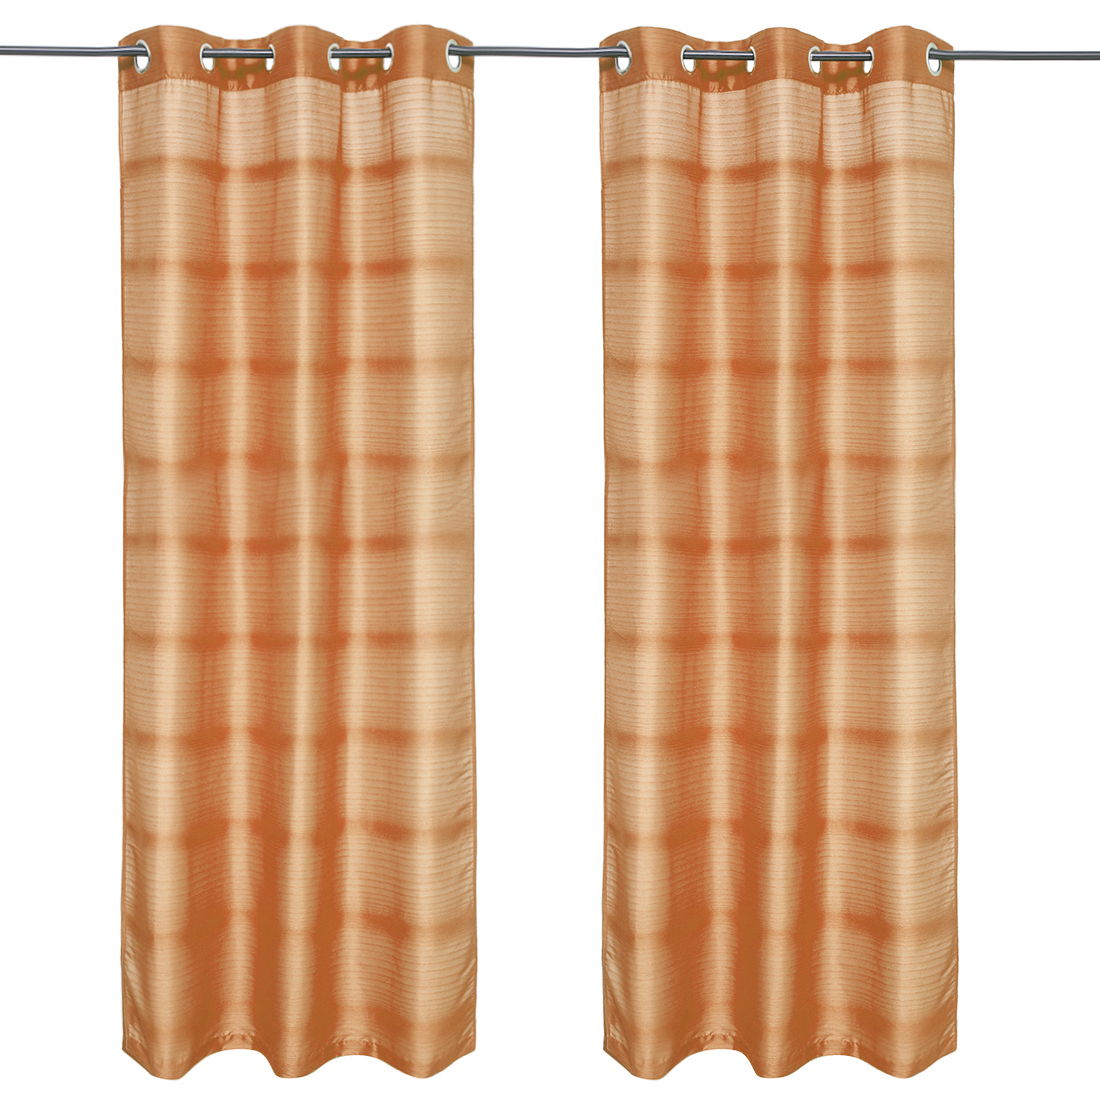 Fiesta Solid set of 2 Polyester Door Curtains in Mustard Colour by Living Essence